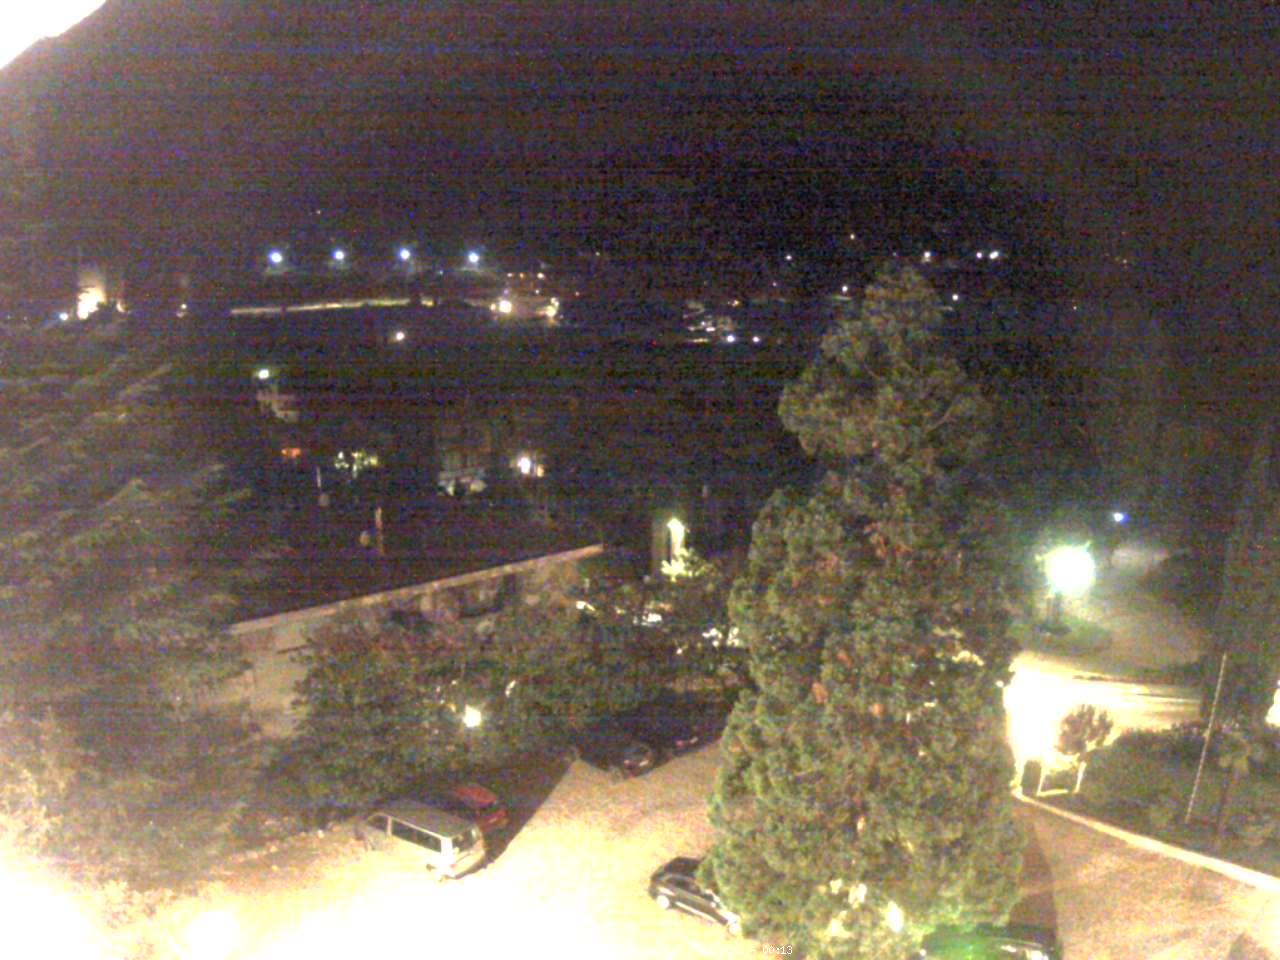 Webcam (pointing to the mountains surrounding Merano)